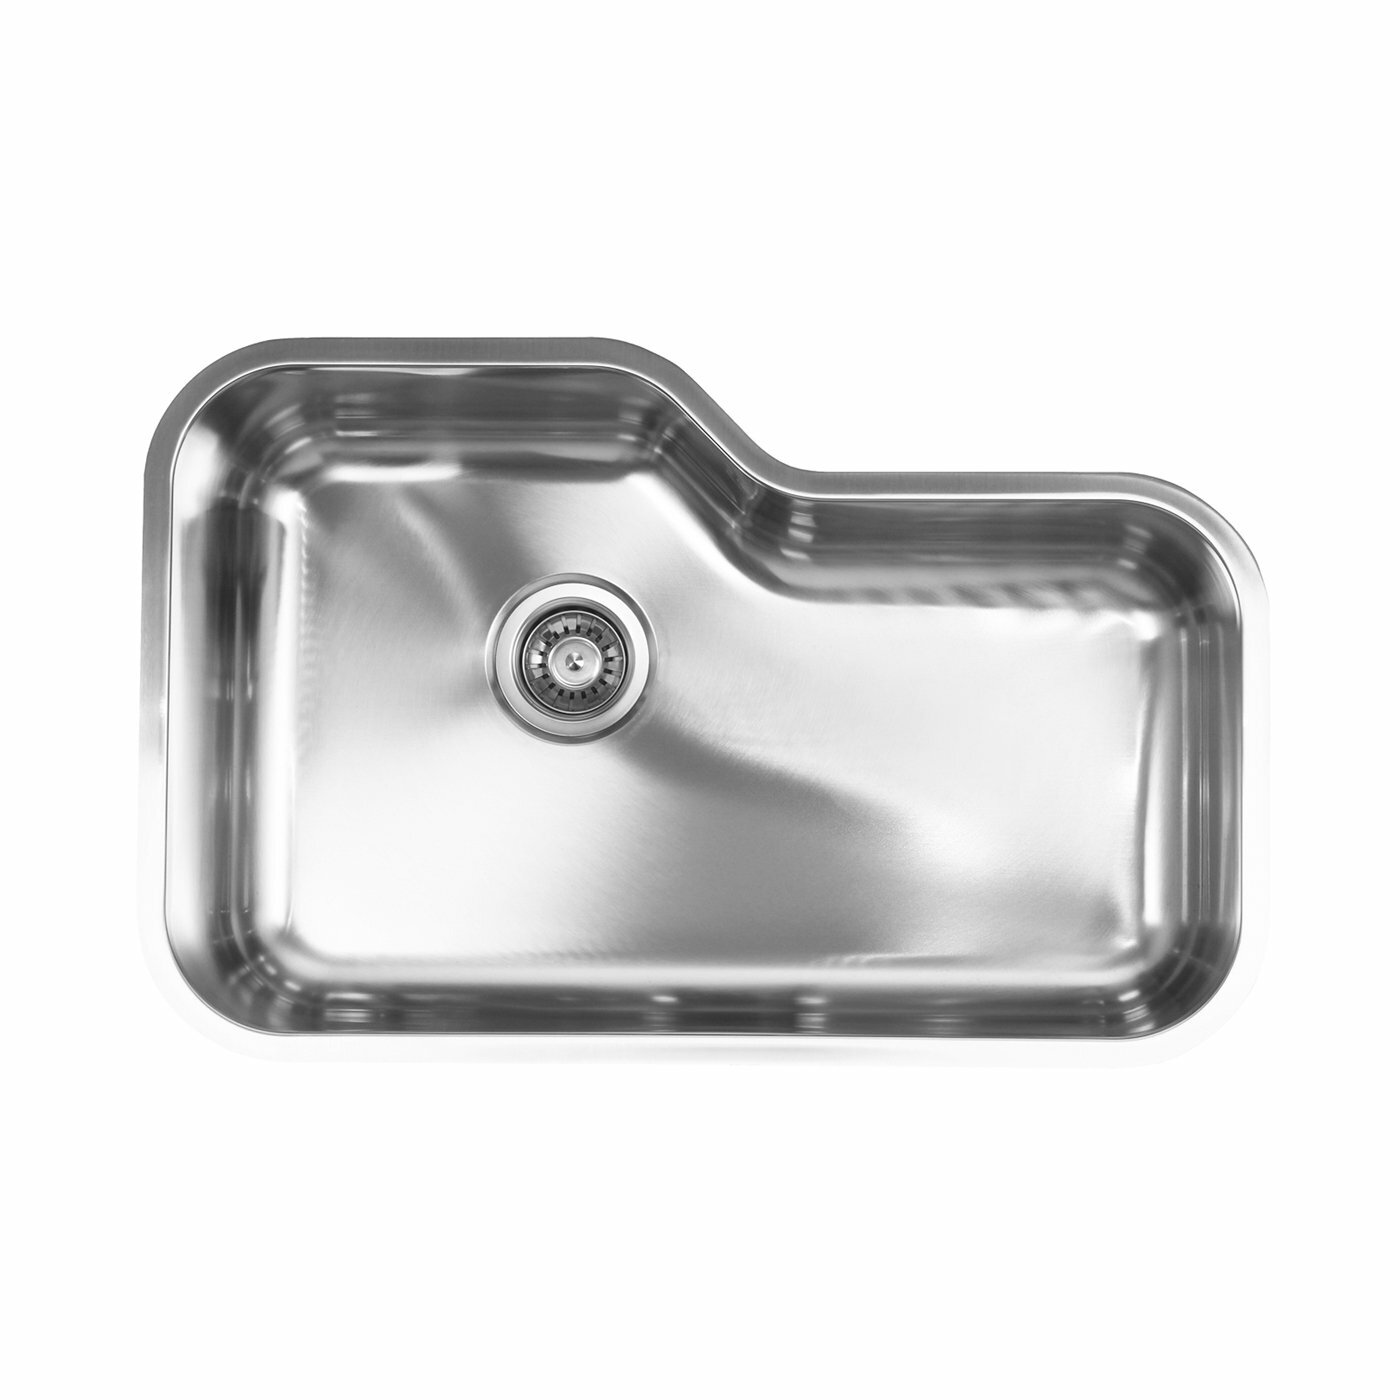 kitchen: stainless steel kitchen sink strainer drain stopper